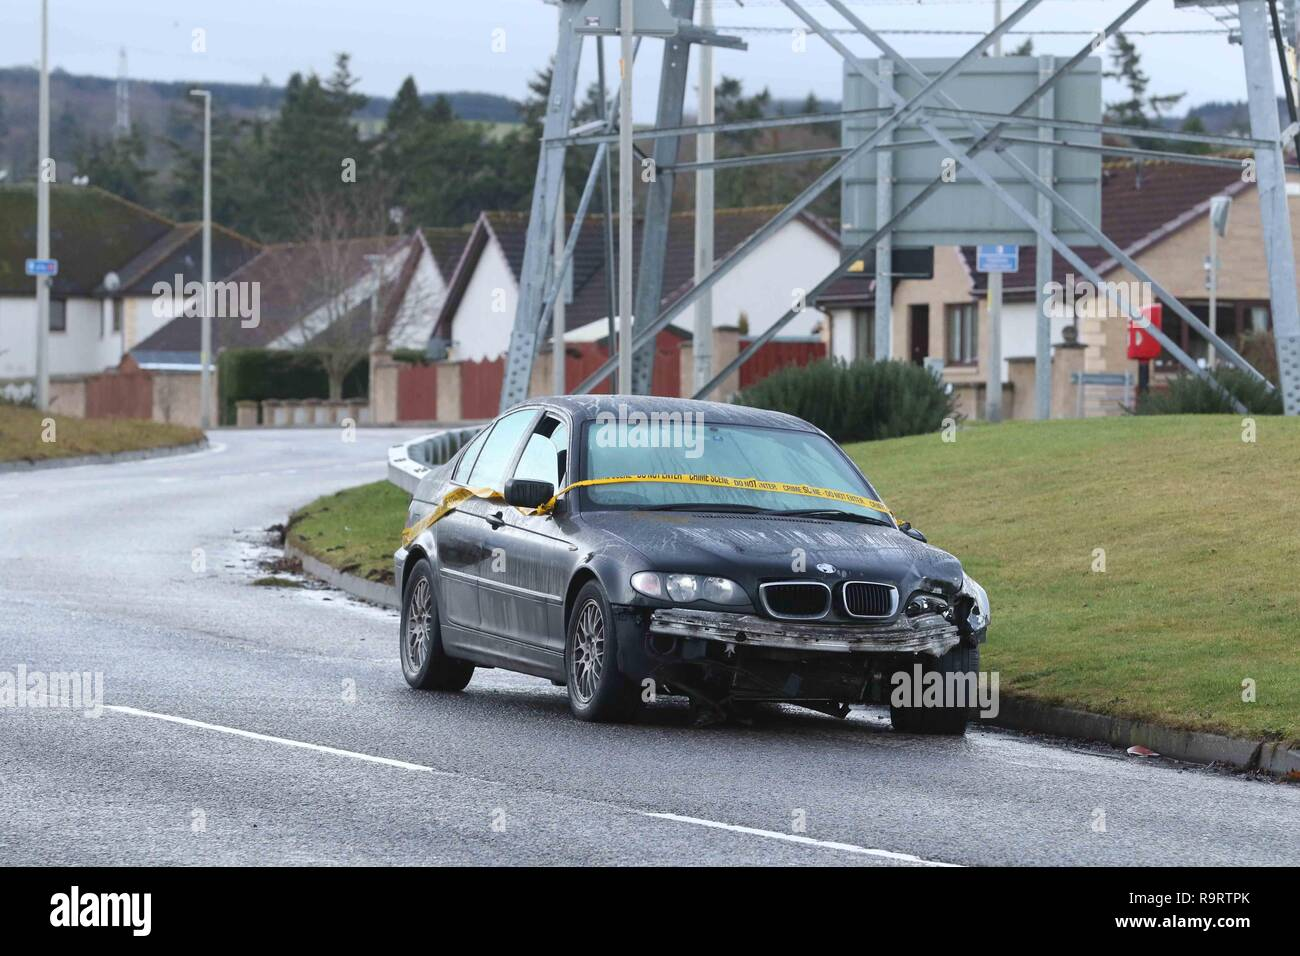 Inverness, Scotland, UK. 28 December 2018. Police in Inverness are trying to trace the driver of a black BMW that was involved in a single-vehicle collision over Christmas. The abandoned vehicle was reported to police on Boxing Day and was still in situ on Essich Road two days later with crime scene tape wrapped around it. There is substantial damage to the front of the vehicle and the nearside door mirror, and the driver's window is partially open. Picture Credit: Andrew Smith/Alamy Live News - Stock Image